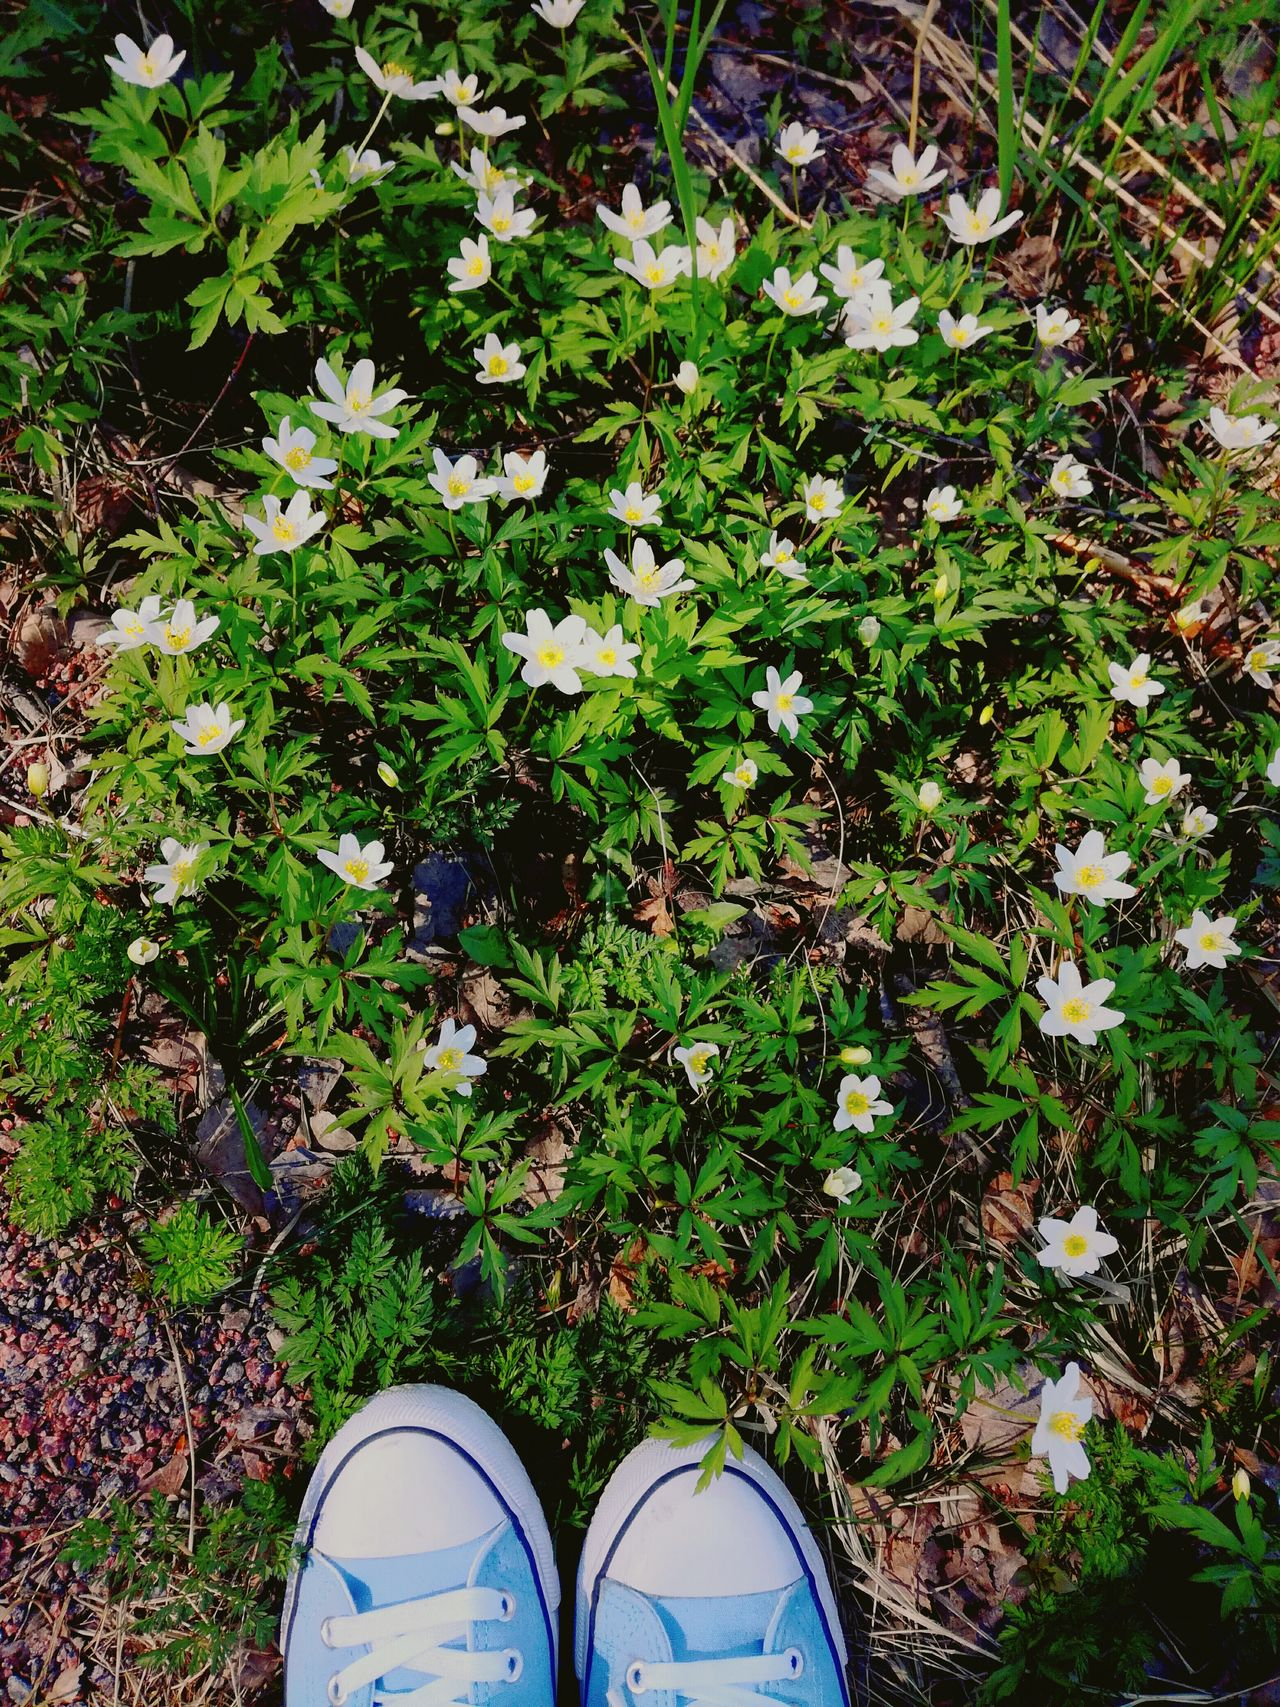 Shoe Low Section Human Leg One Person Standing High Angle View Canvas Shoe Sneakers Anemones Wood Anemone In The Forest Finland Outdoors Flowers Spring Flowers Sunny Day White Flowers Wild Flowers